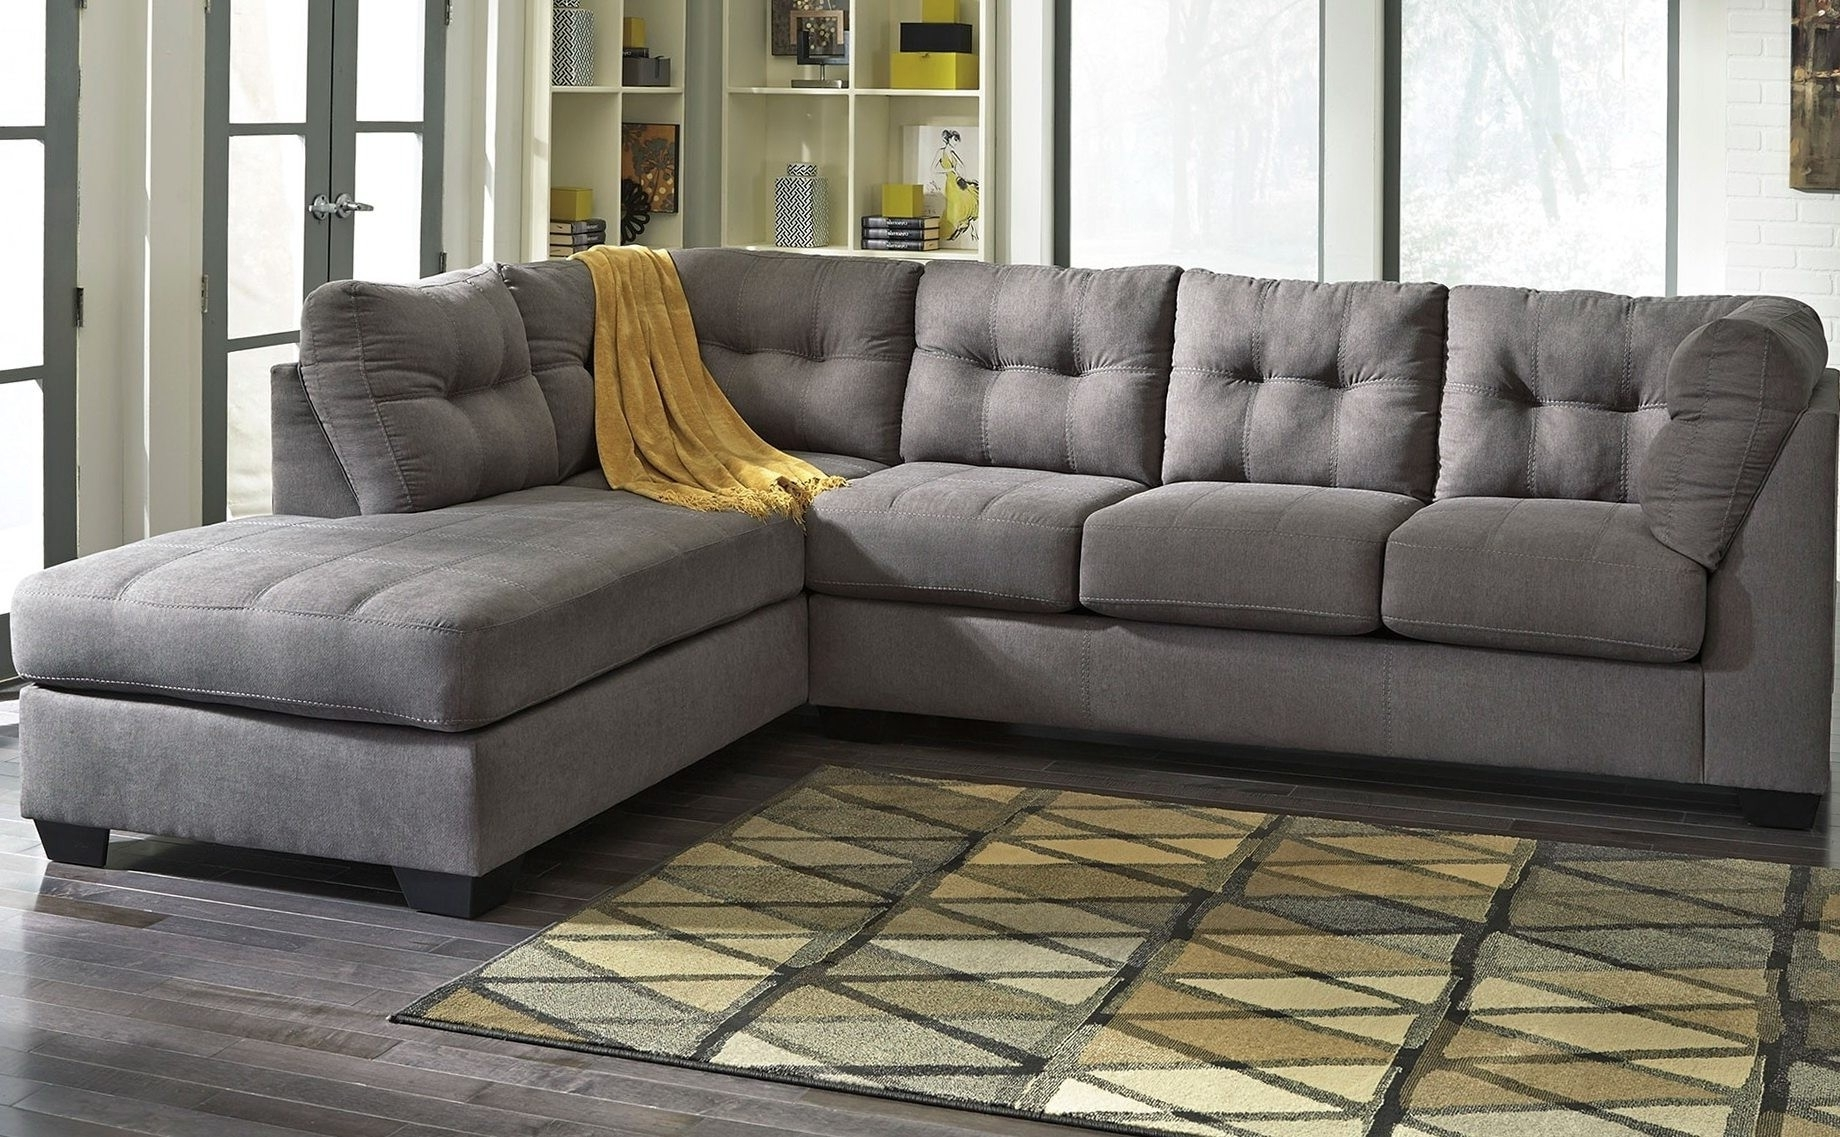 Newest Sofa ~ Awesome Grey Corduroy Couch Sectional Sofas With Chaise For Grey Chaise Lounges (View 12 of 15)